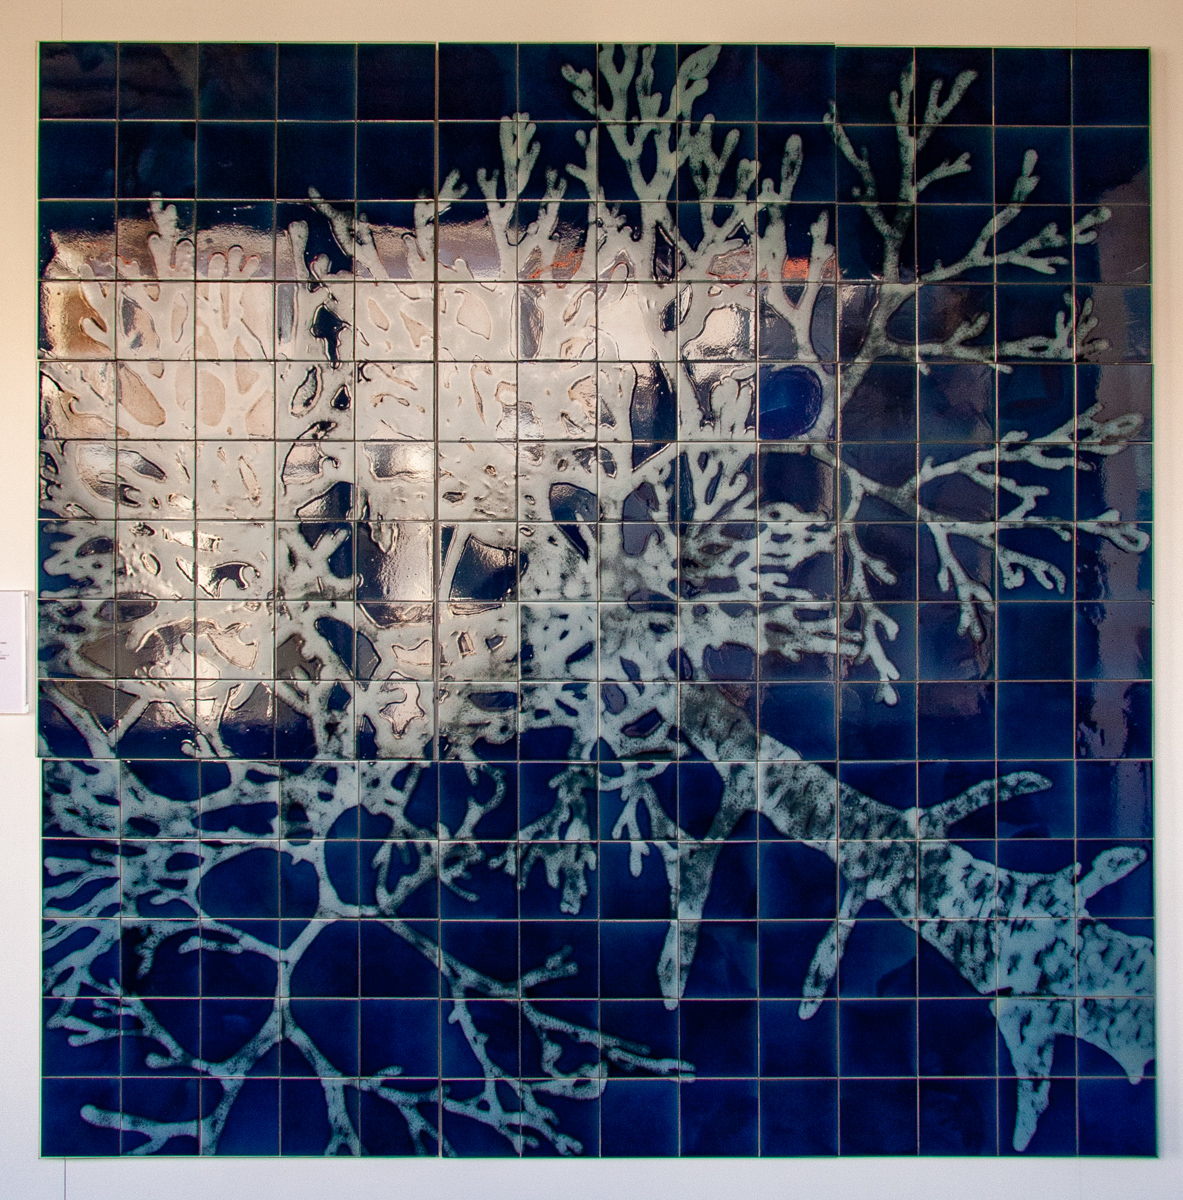 20th Century Tile Panel: The Shadow